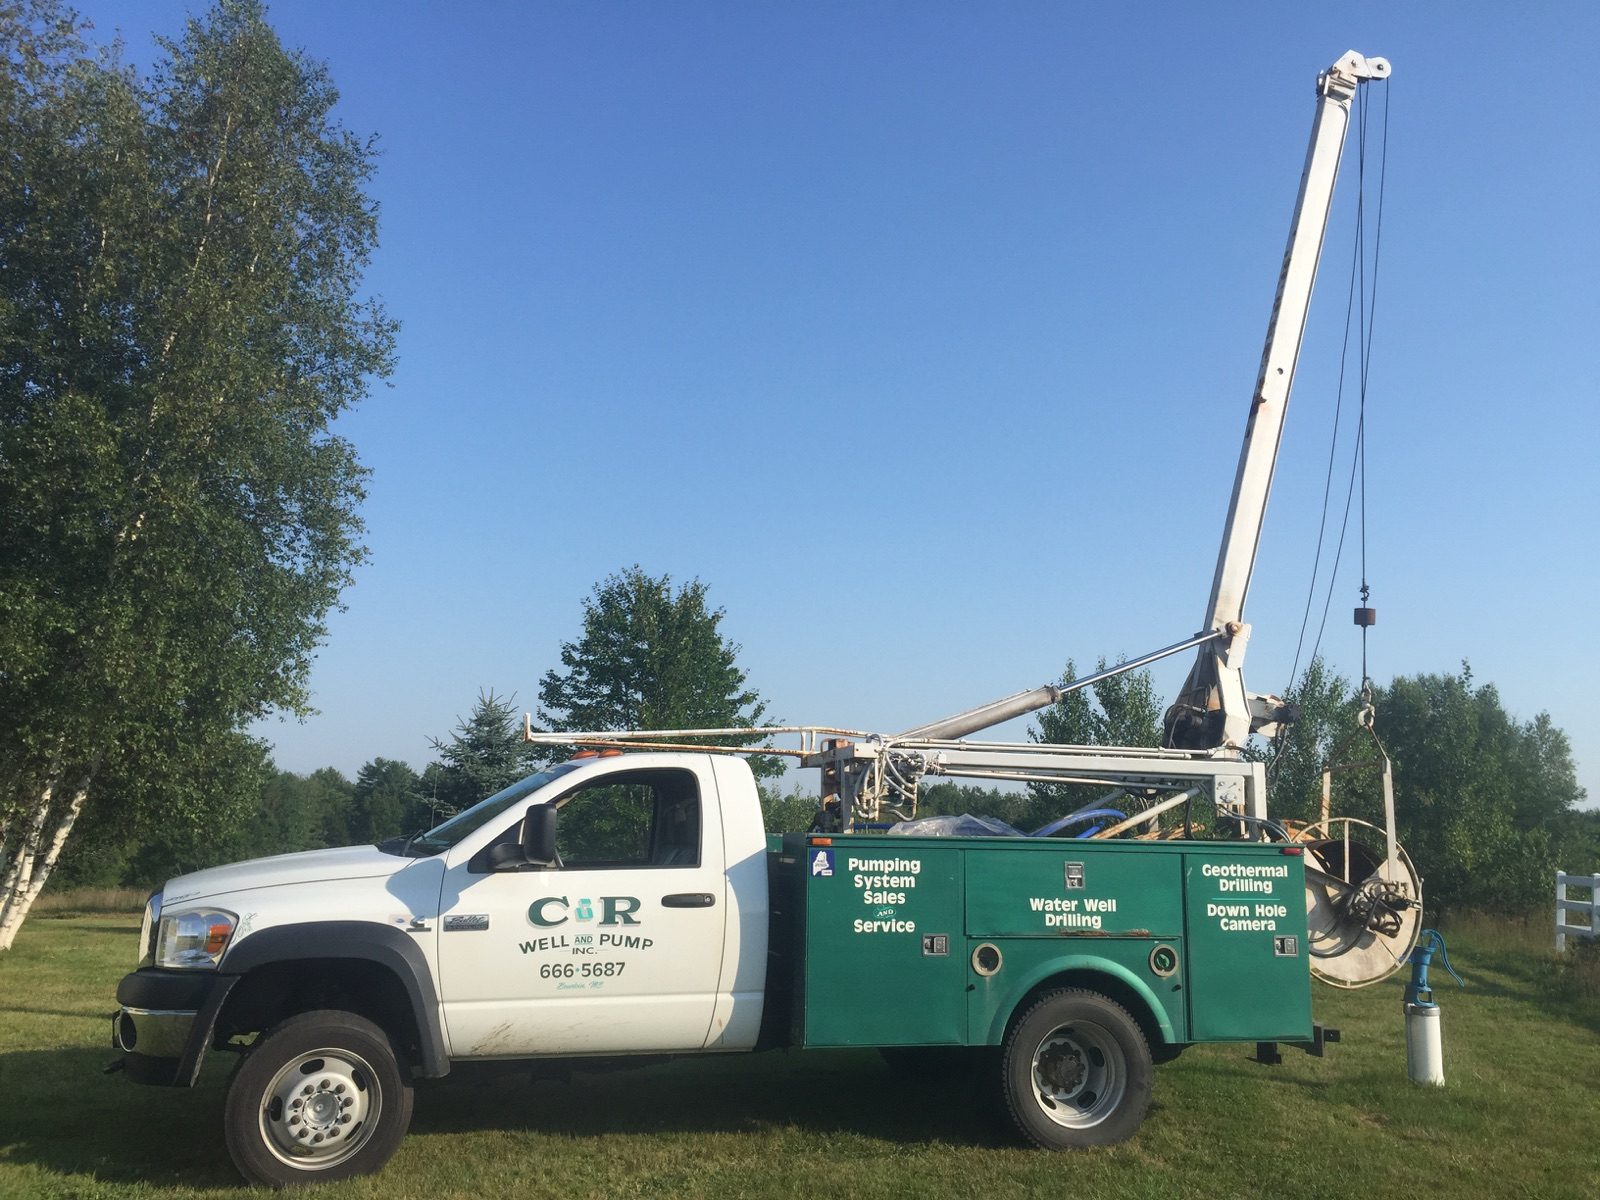 C&R Well and Pump, Inc., Specialists in drilled water wells and submersible pump systems, Bowdoin, Maine